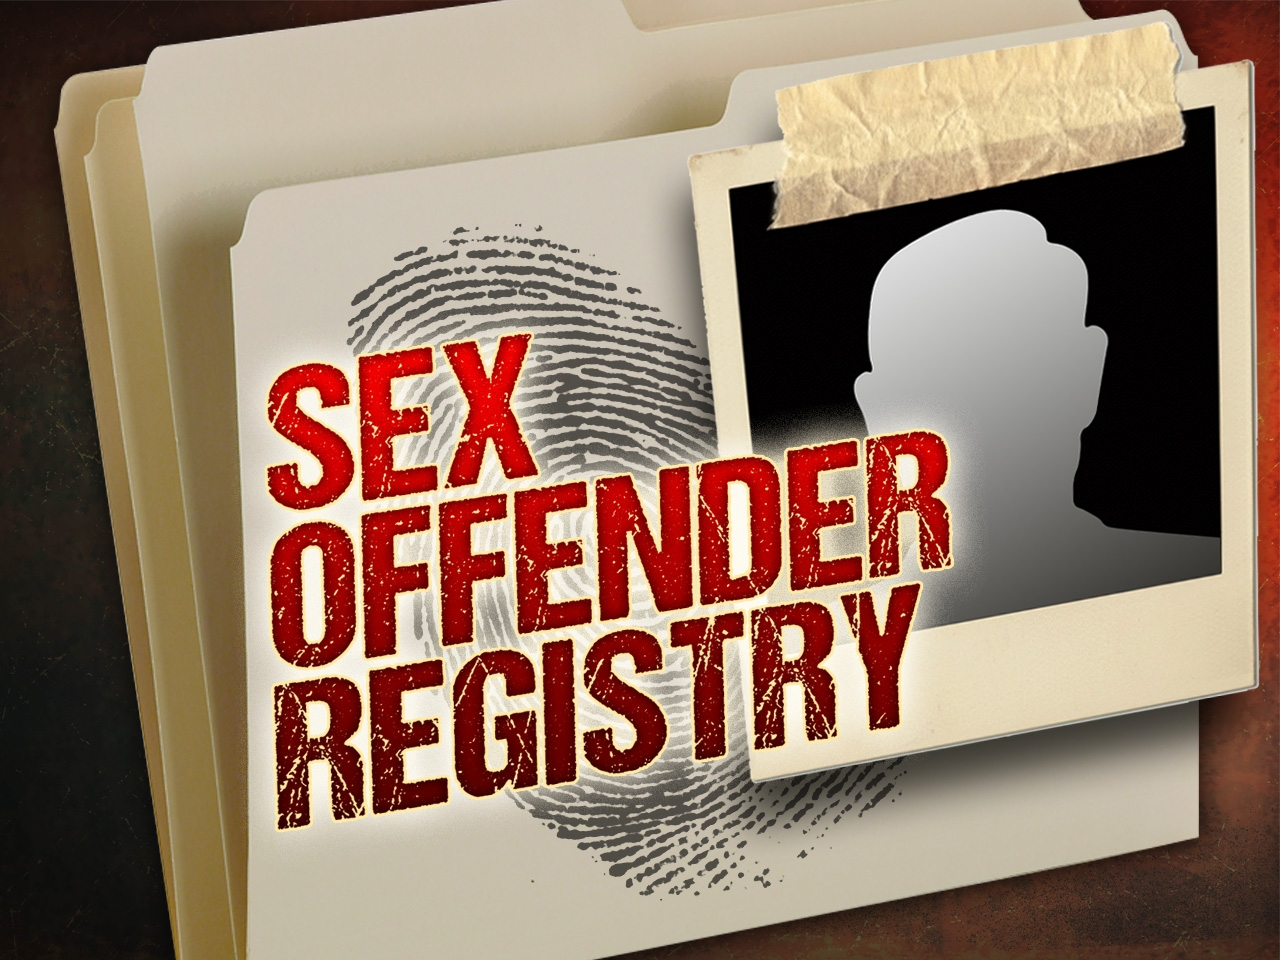 Landlord rights and registered sex offender